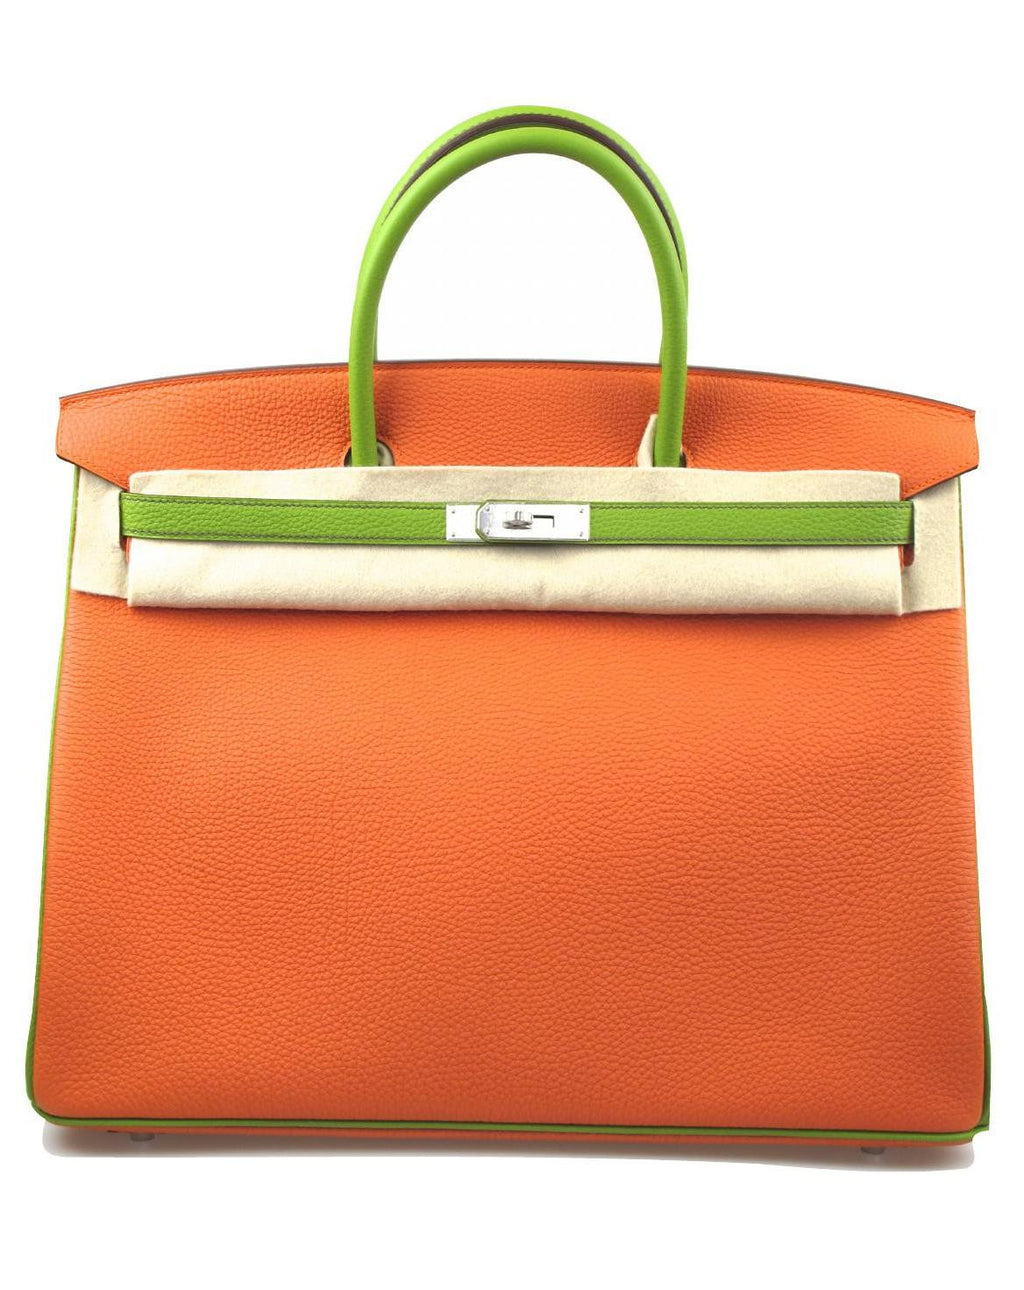 HERMES Birkin 40cm Togo Leather 2 Tone Vert Anis and Orange with Palladium